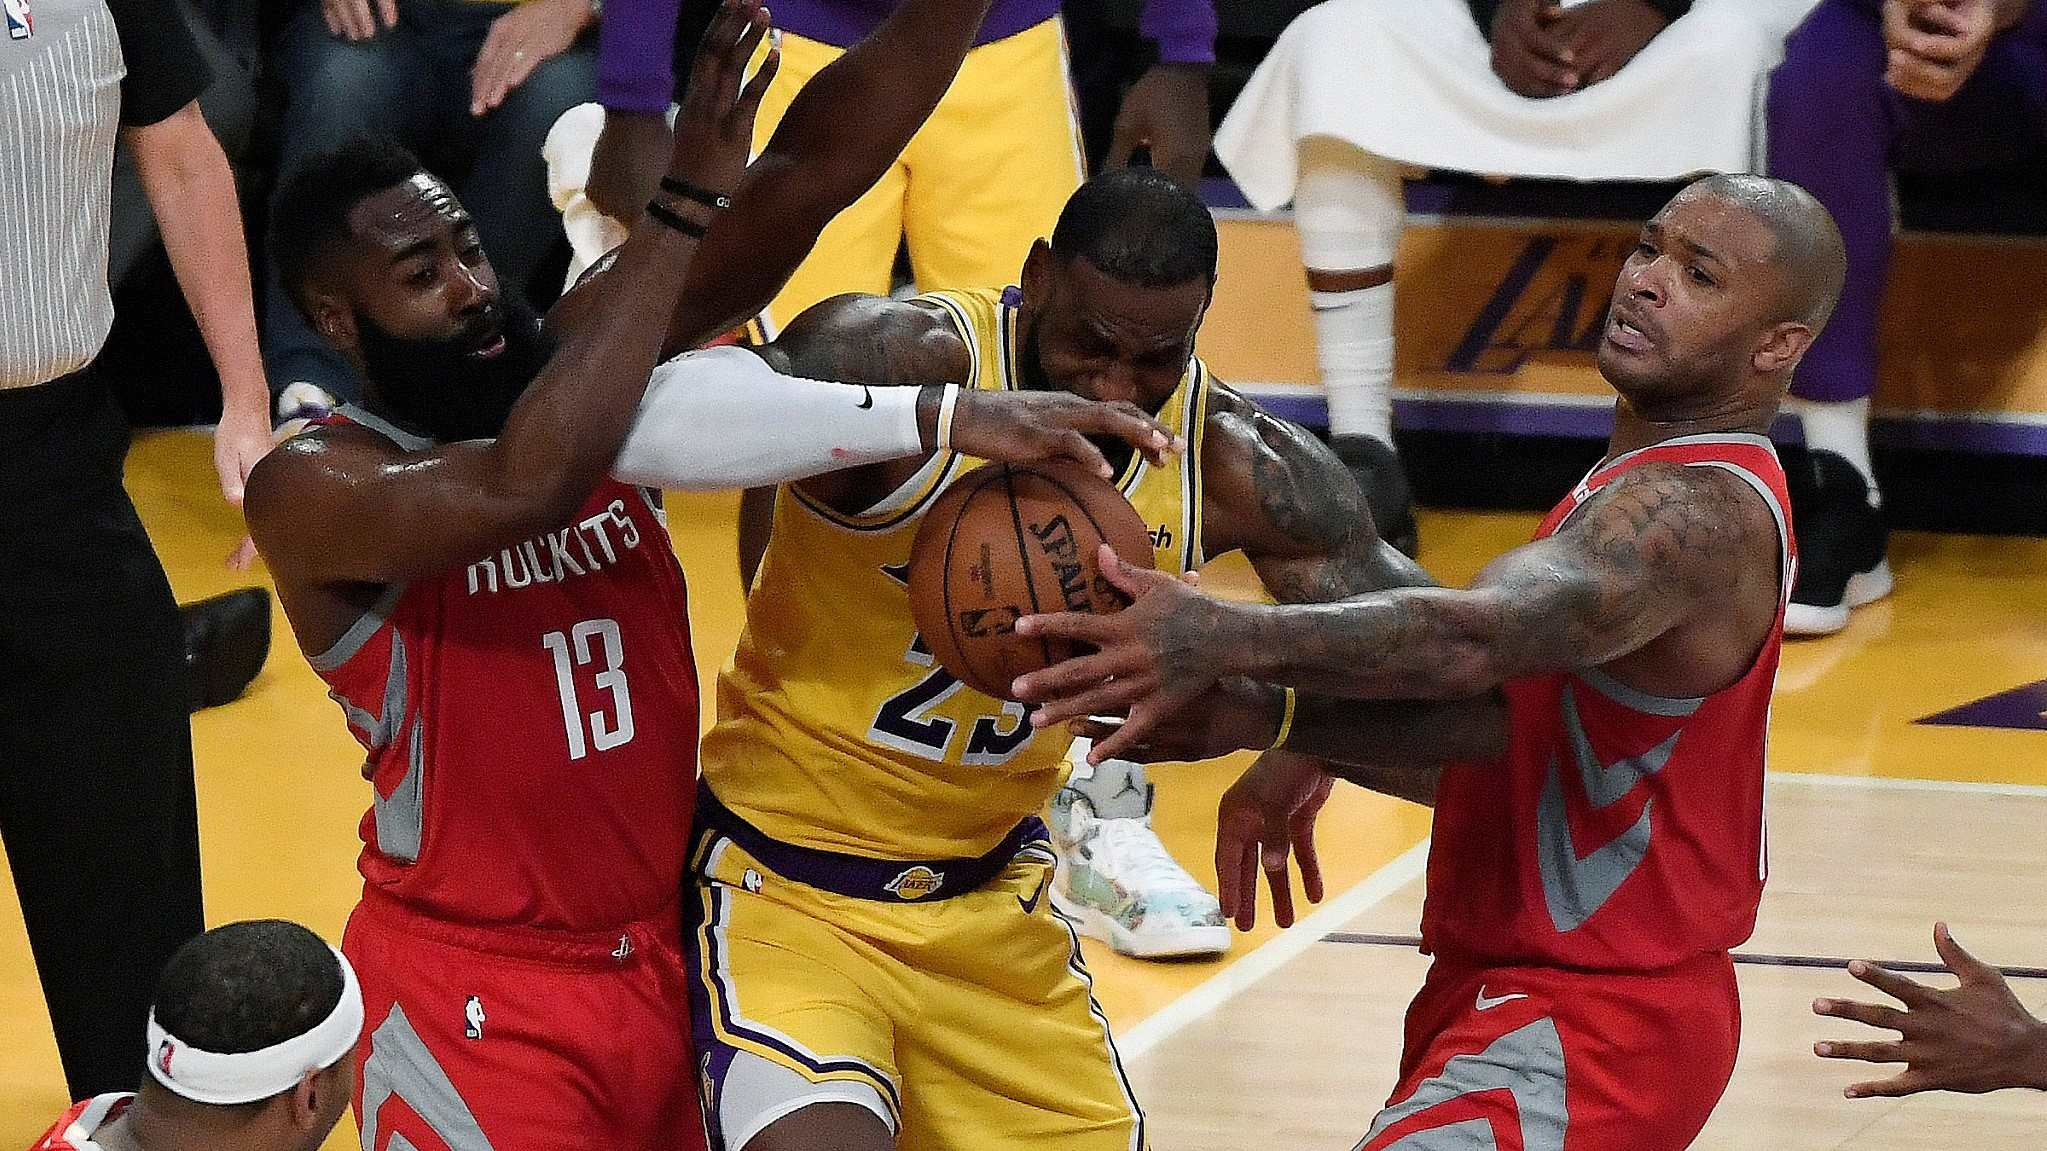 33cdabb5948e The 2018-19 NBA season met its most heated game so far on Saturday as the Houston  Rockets defeated the Los Angeles Lakers 124-115 at the Staples Center.